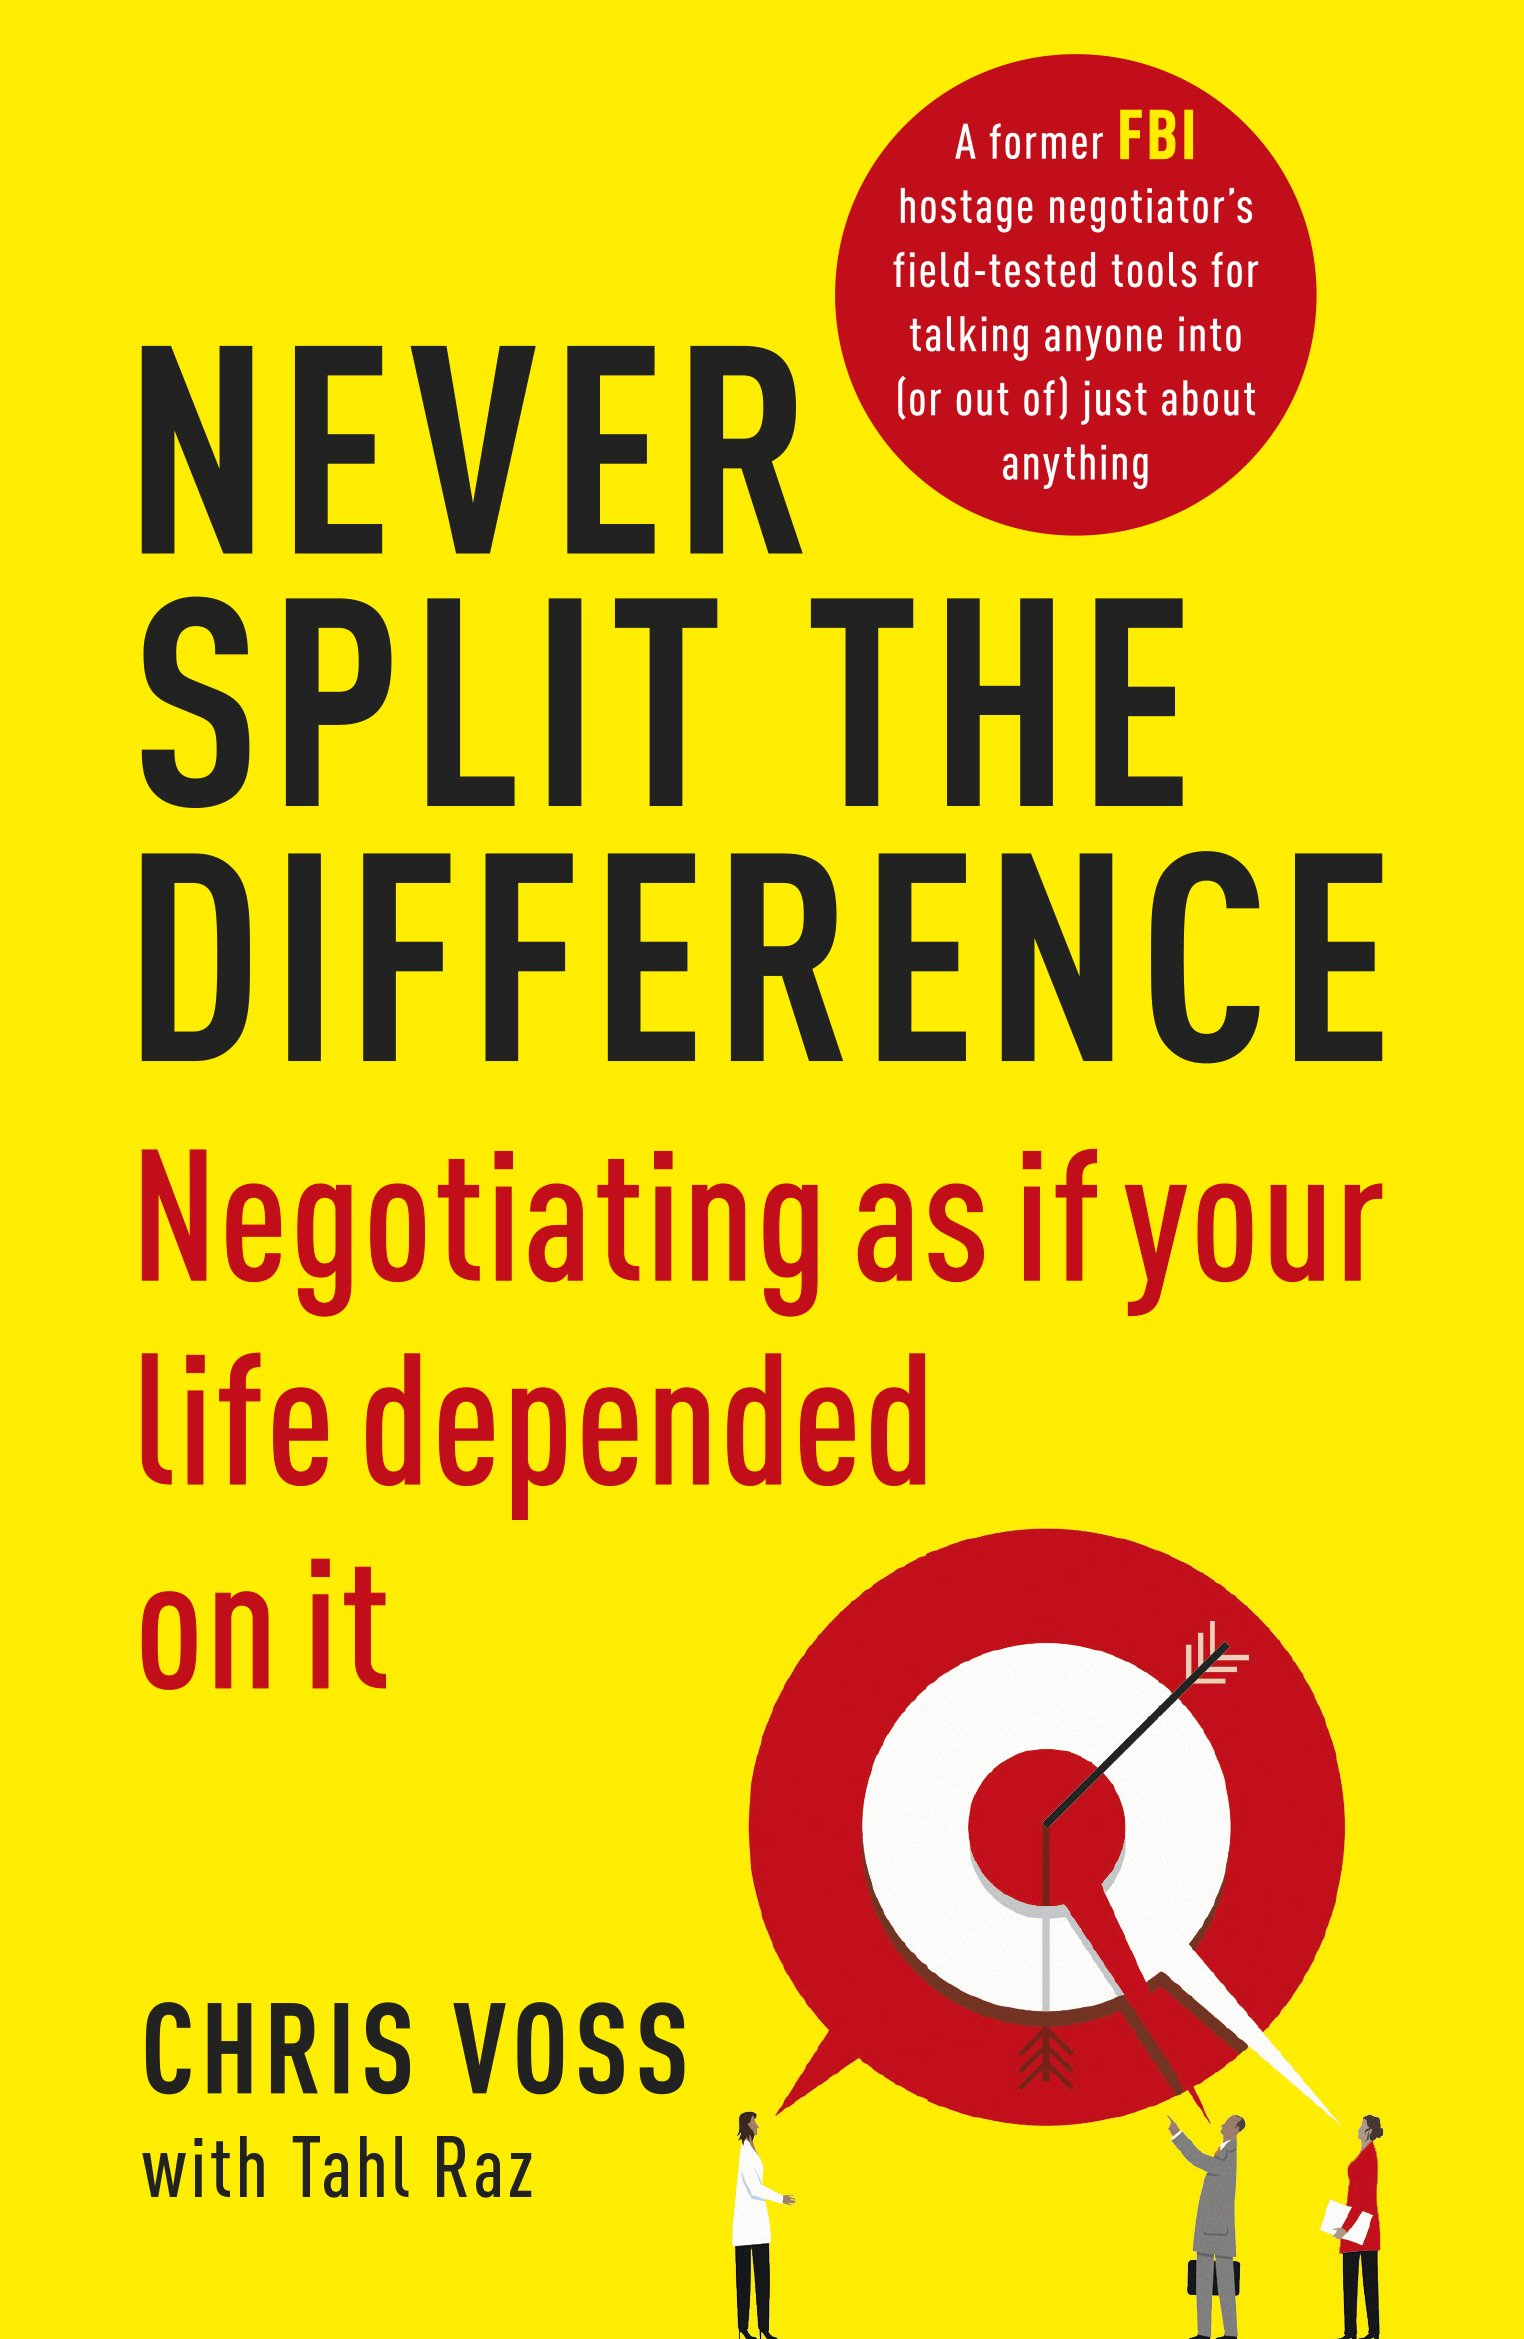 Image of the front cover of the book Never Split the Difference